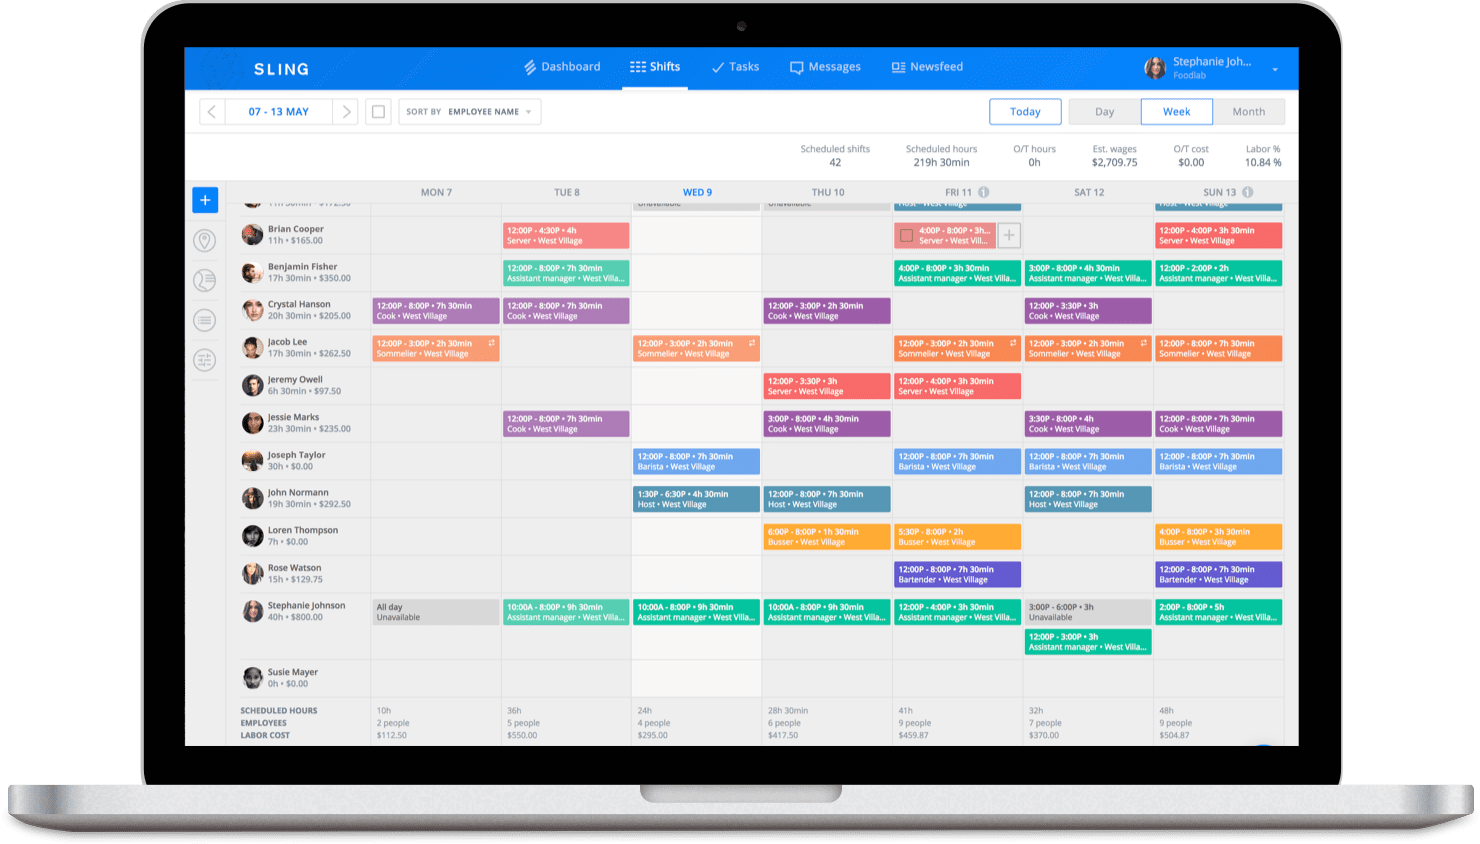 sling employee and shift scheduling made easy